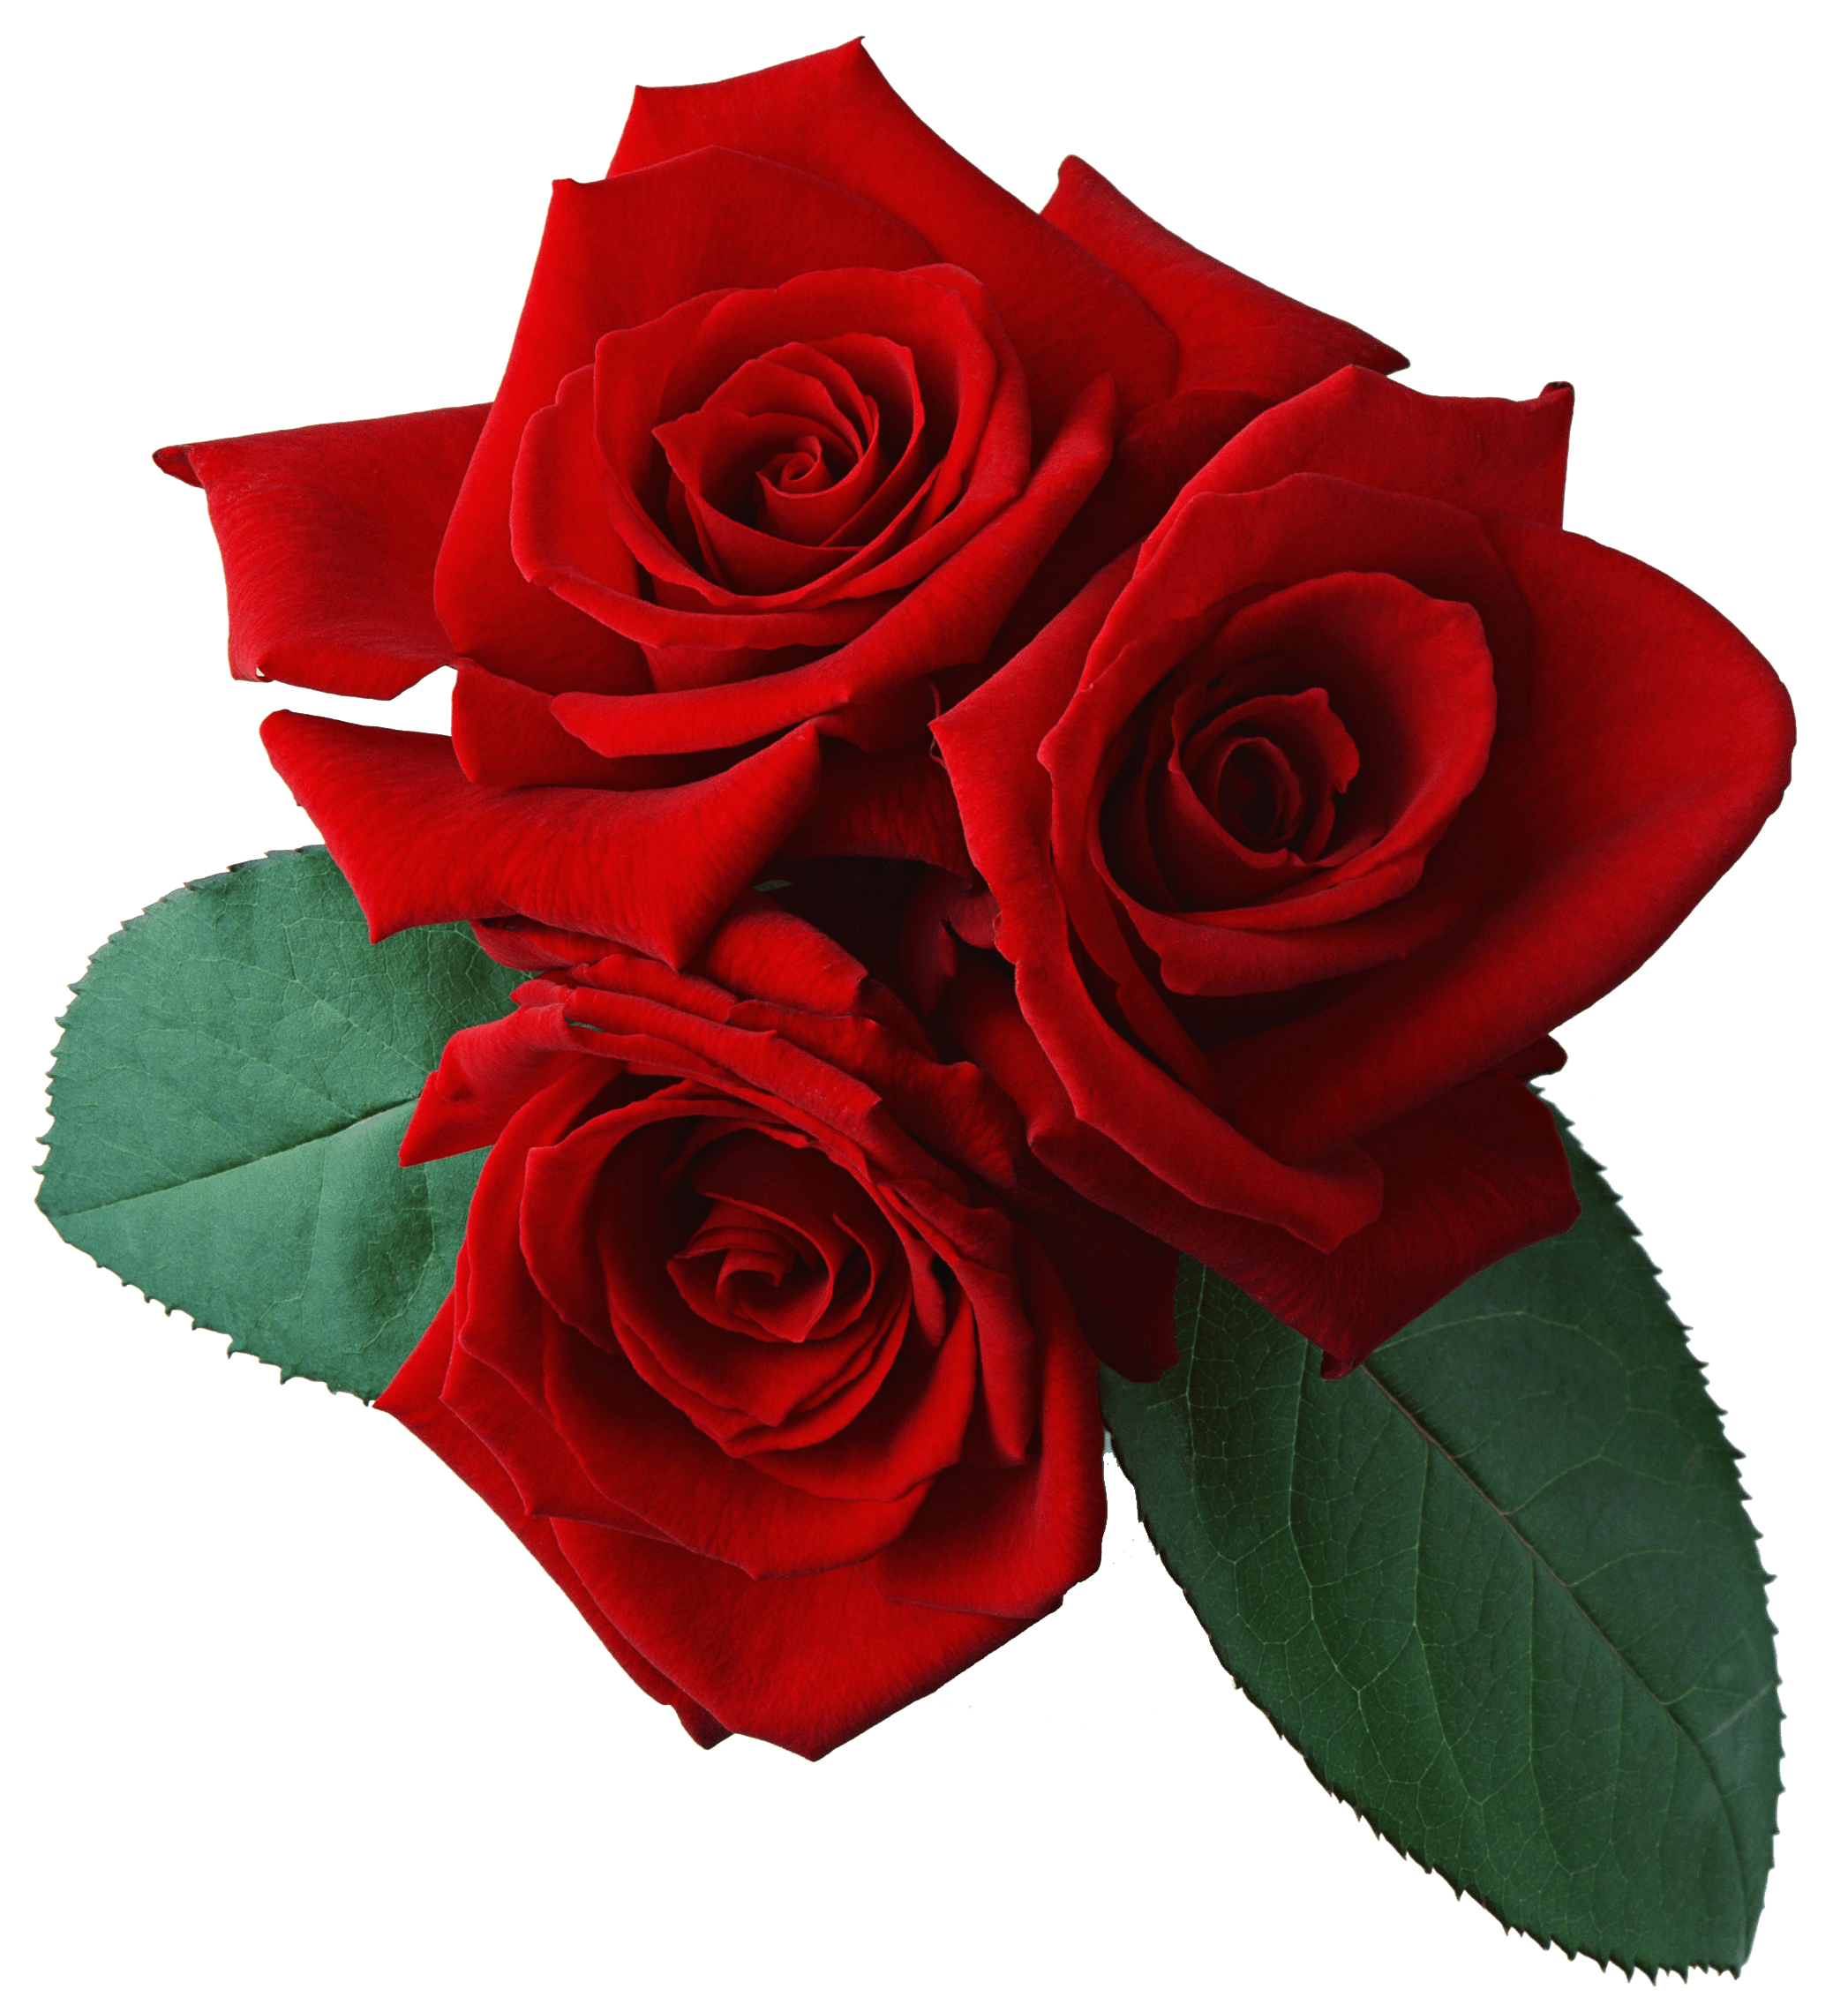 Rose Download Red Rose Transparent Background Hq Png Image Freepngimg